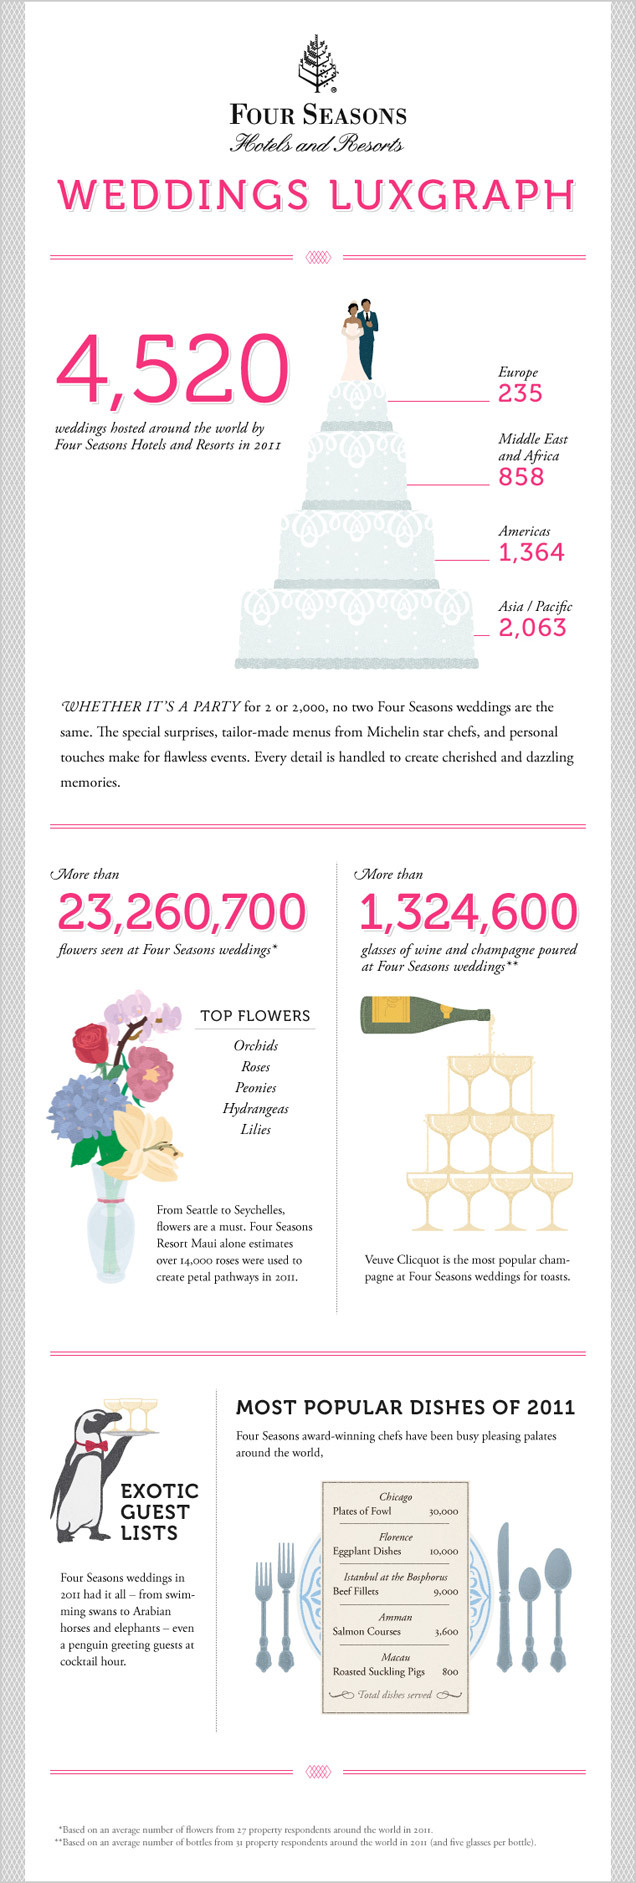 Four-seasons-weddings-infographic.full